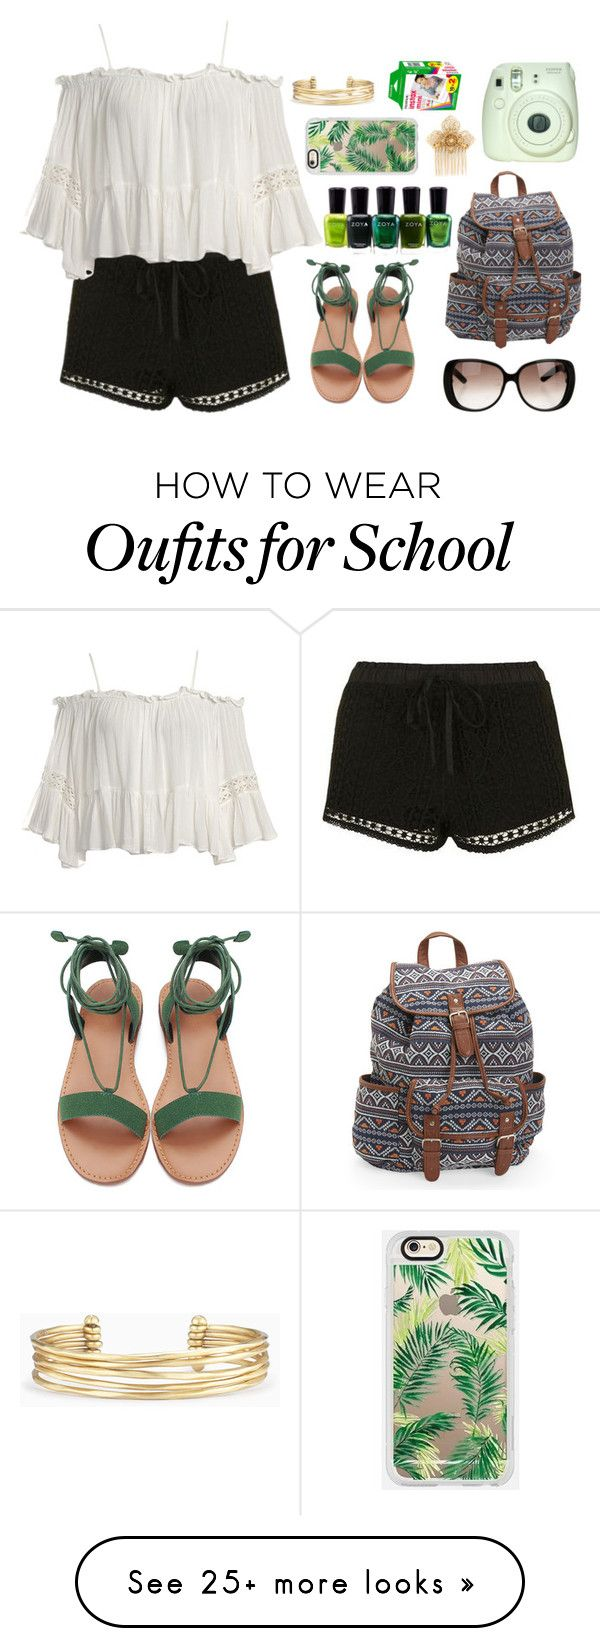 """Back To School"" by sugarplumfairy98 on Polyvore featuring Topshop, Sans Souci, Gucci, Aéropostale, Zoya, Stella & Dot, Casetify, Fujifilm, Miriam Haskell and spf98fashion"